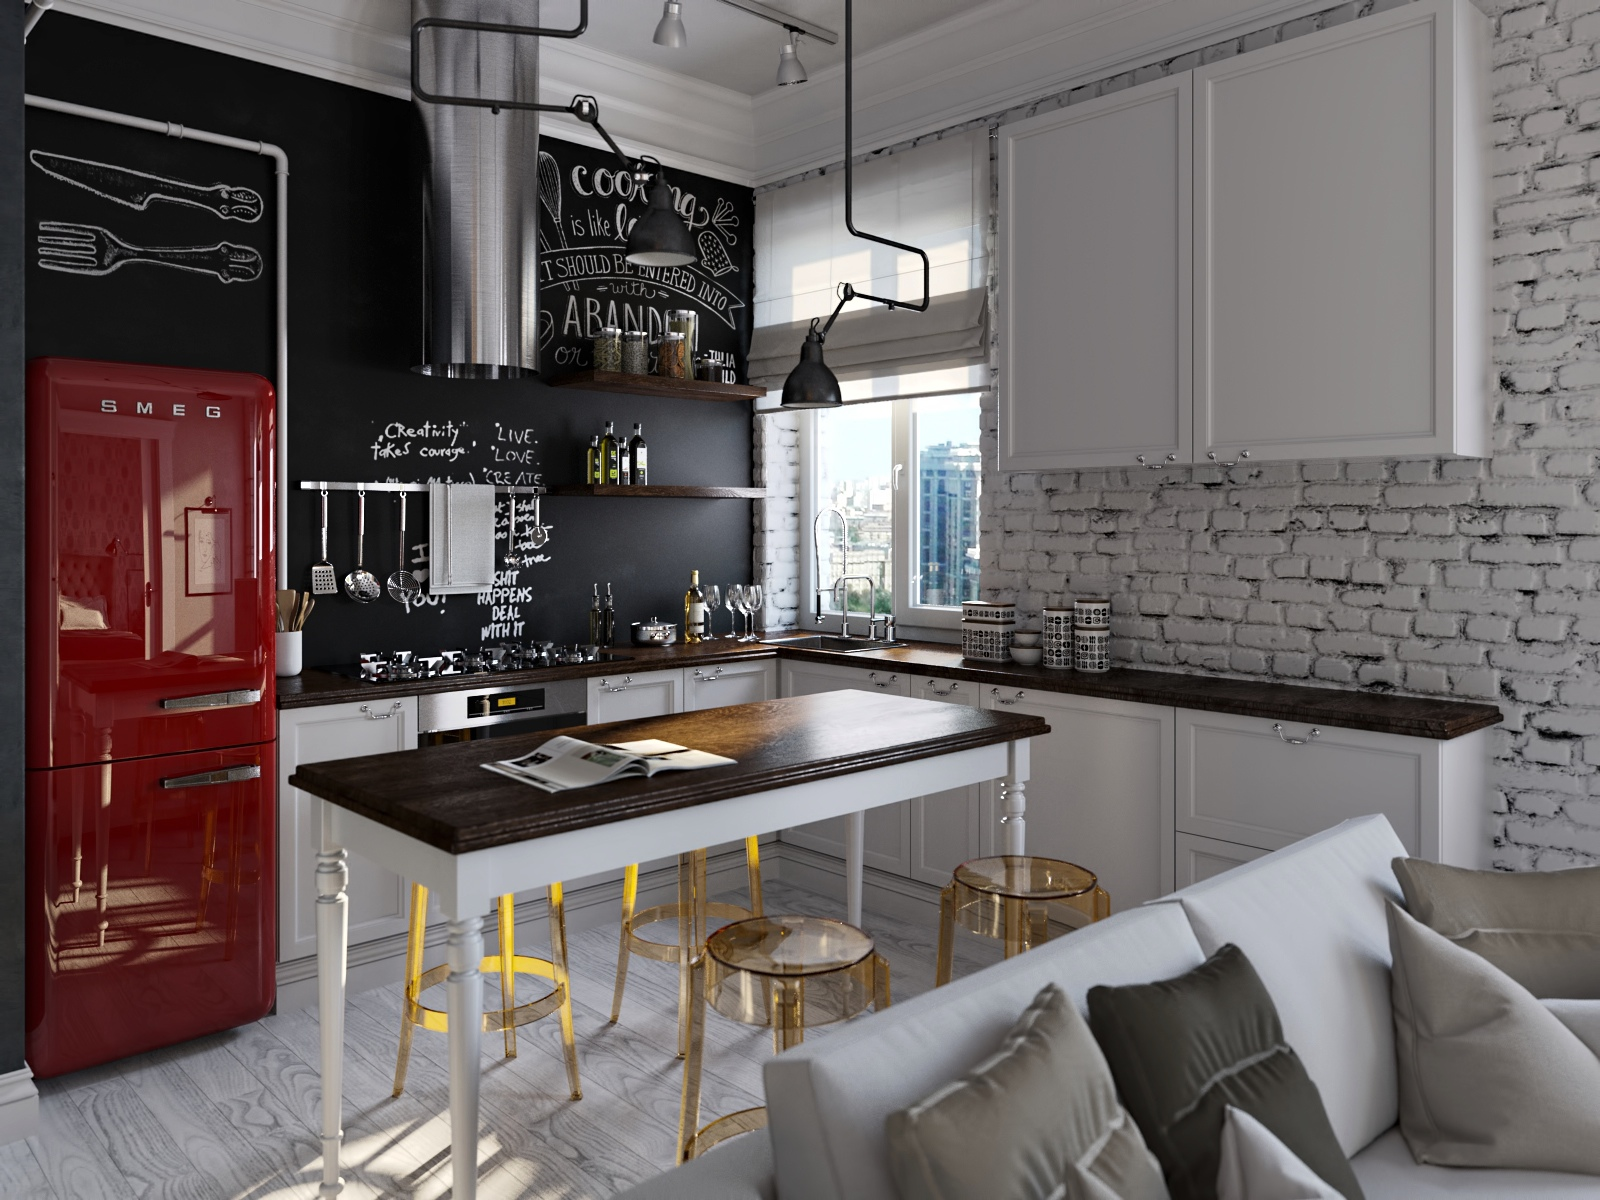 Red smeg fridge interior design ideas for Room 9 design